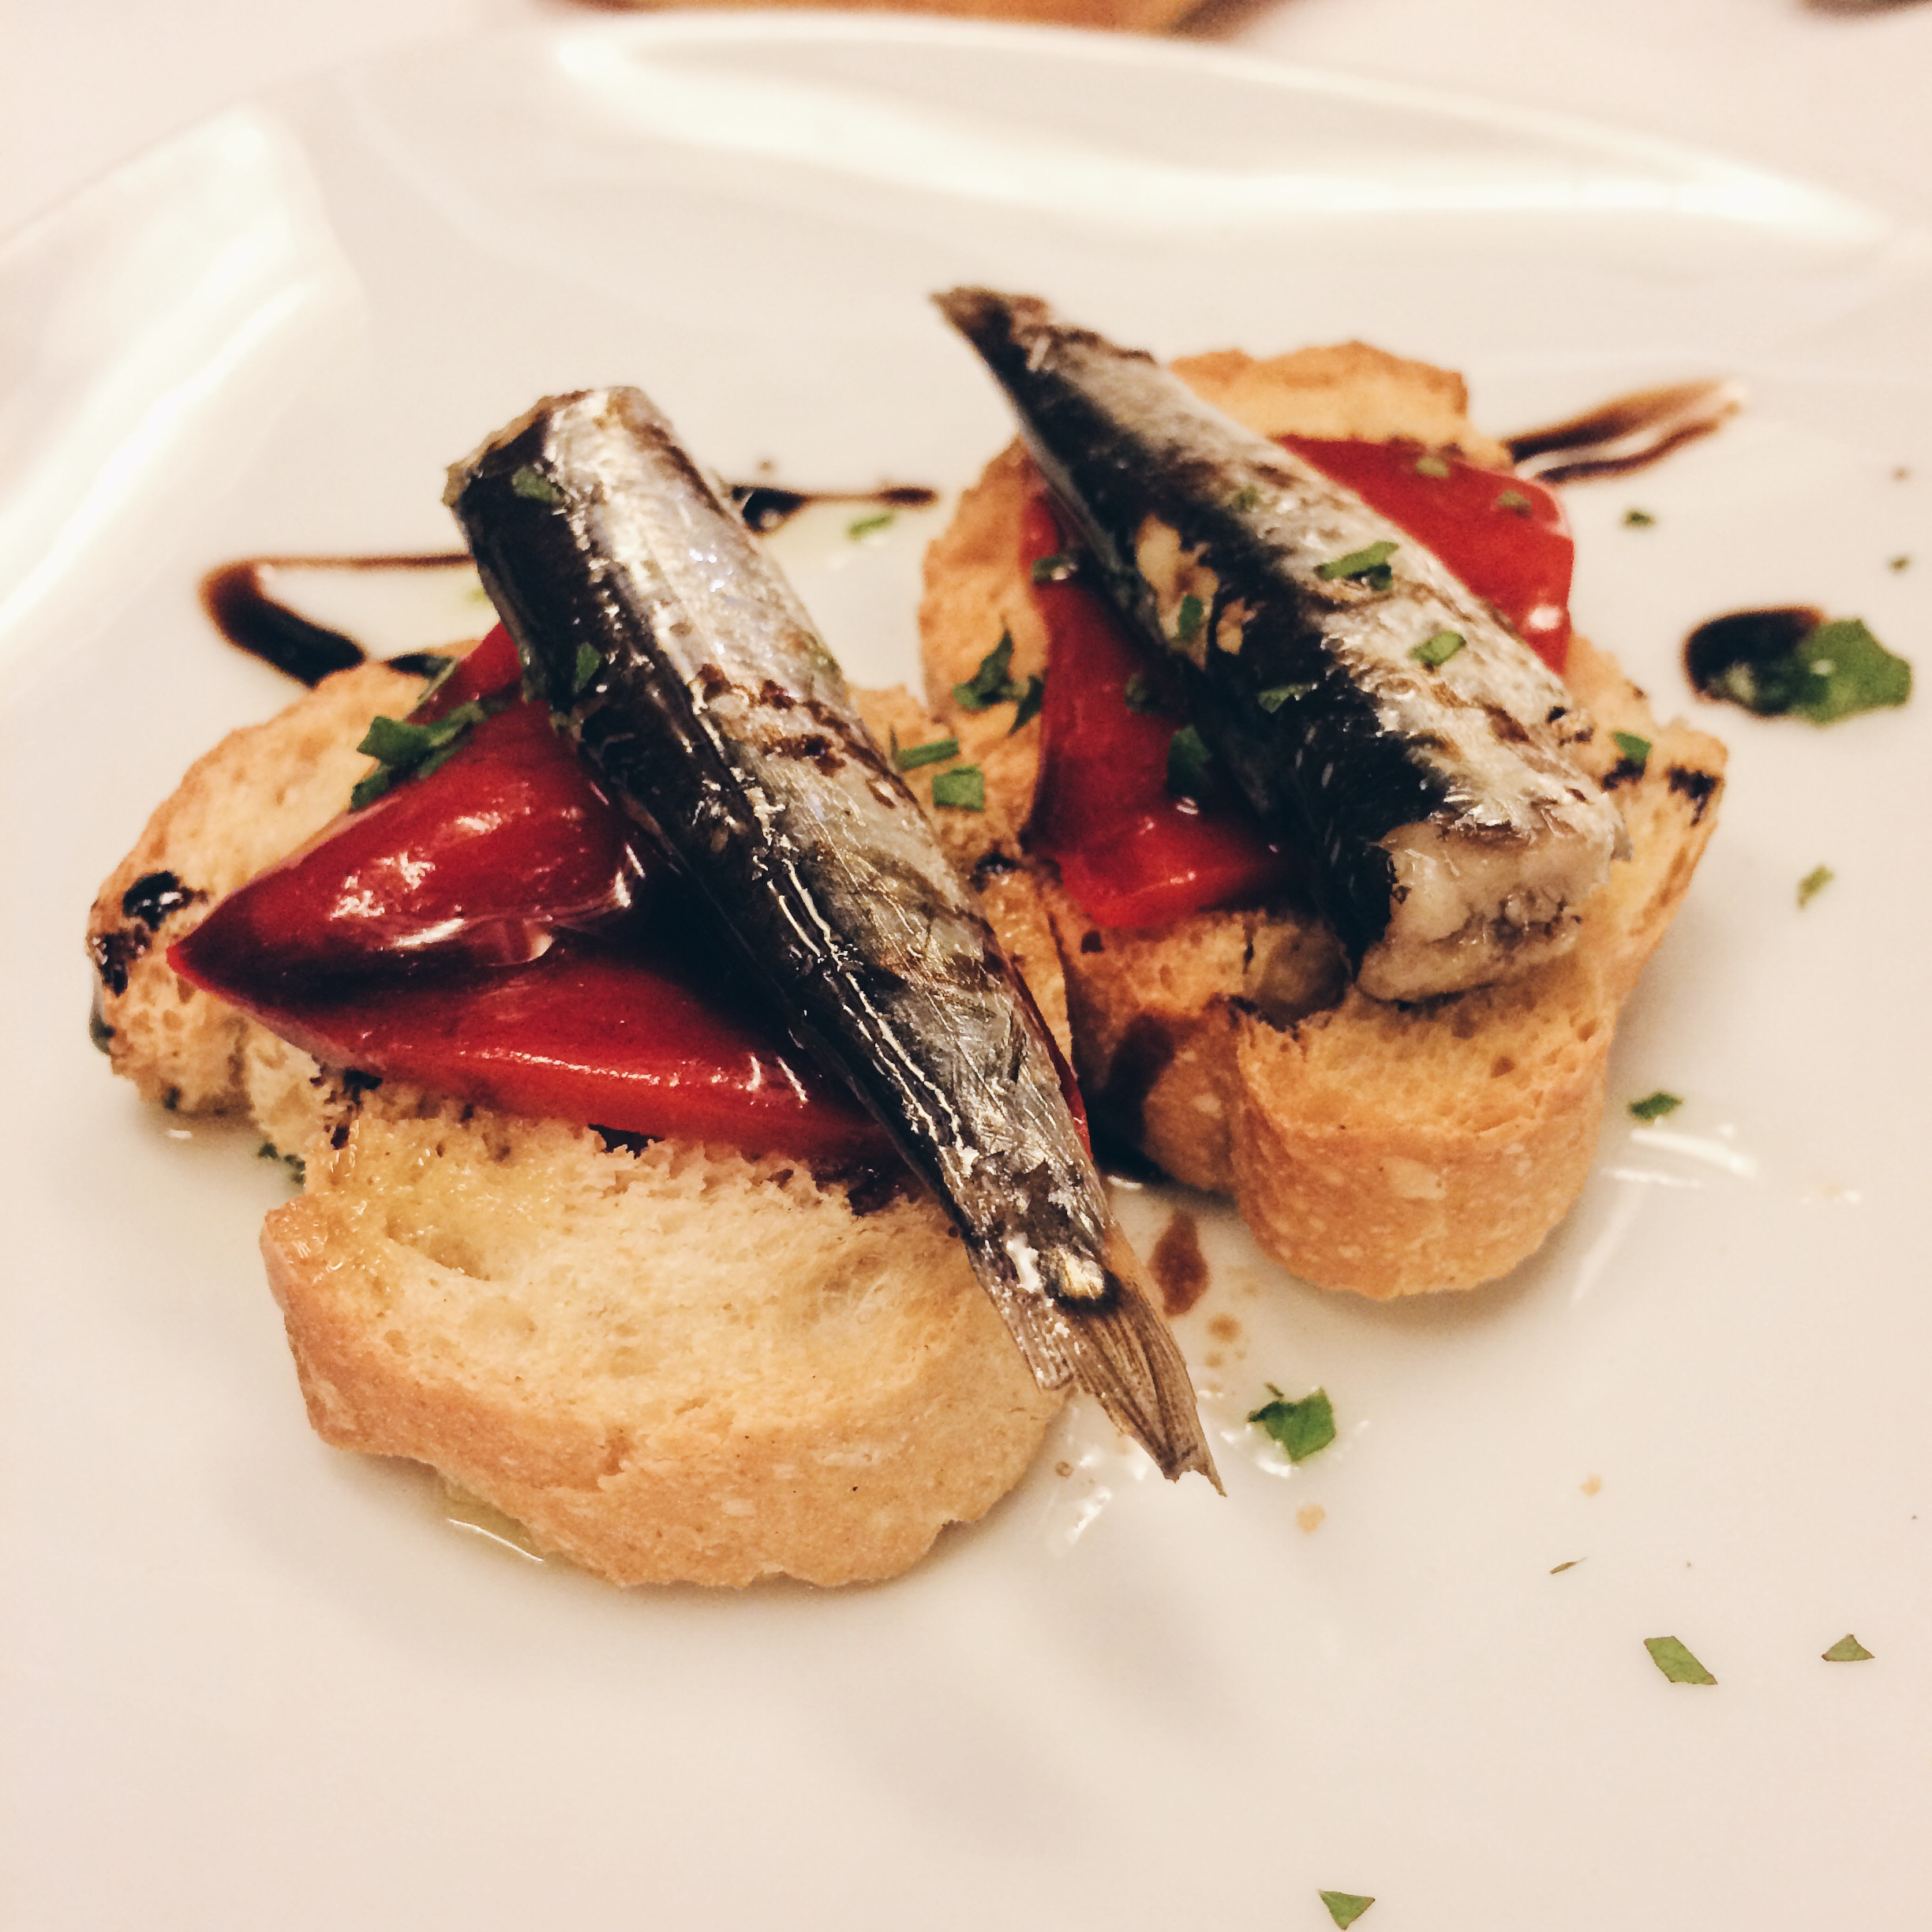 Sardines and red pepper at Cal Pep, Barcelona